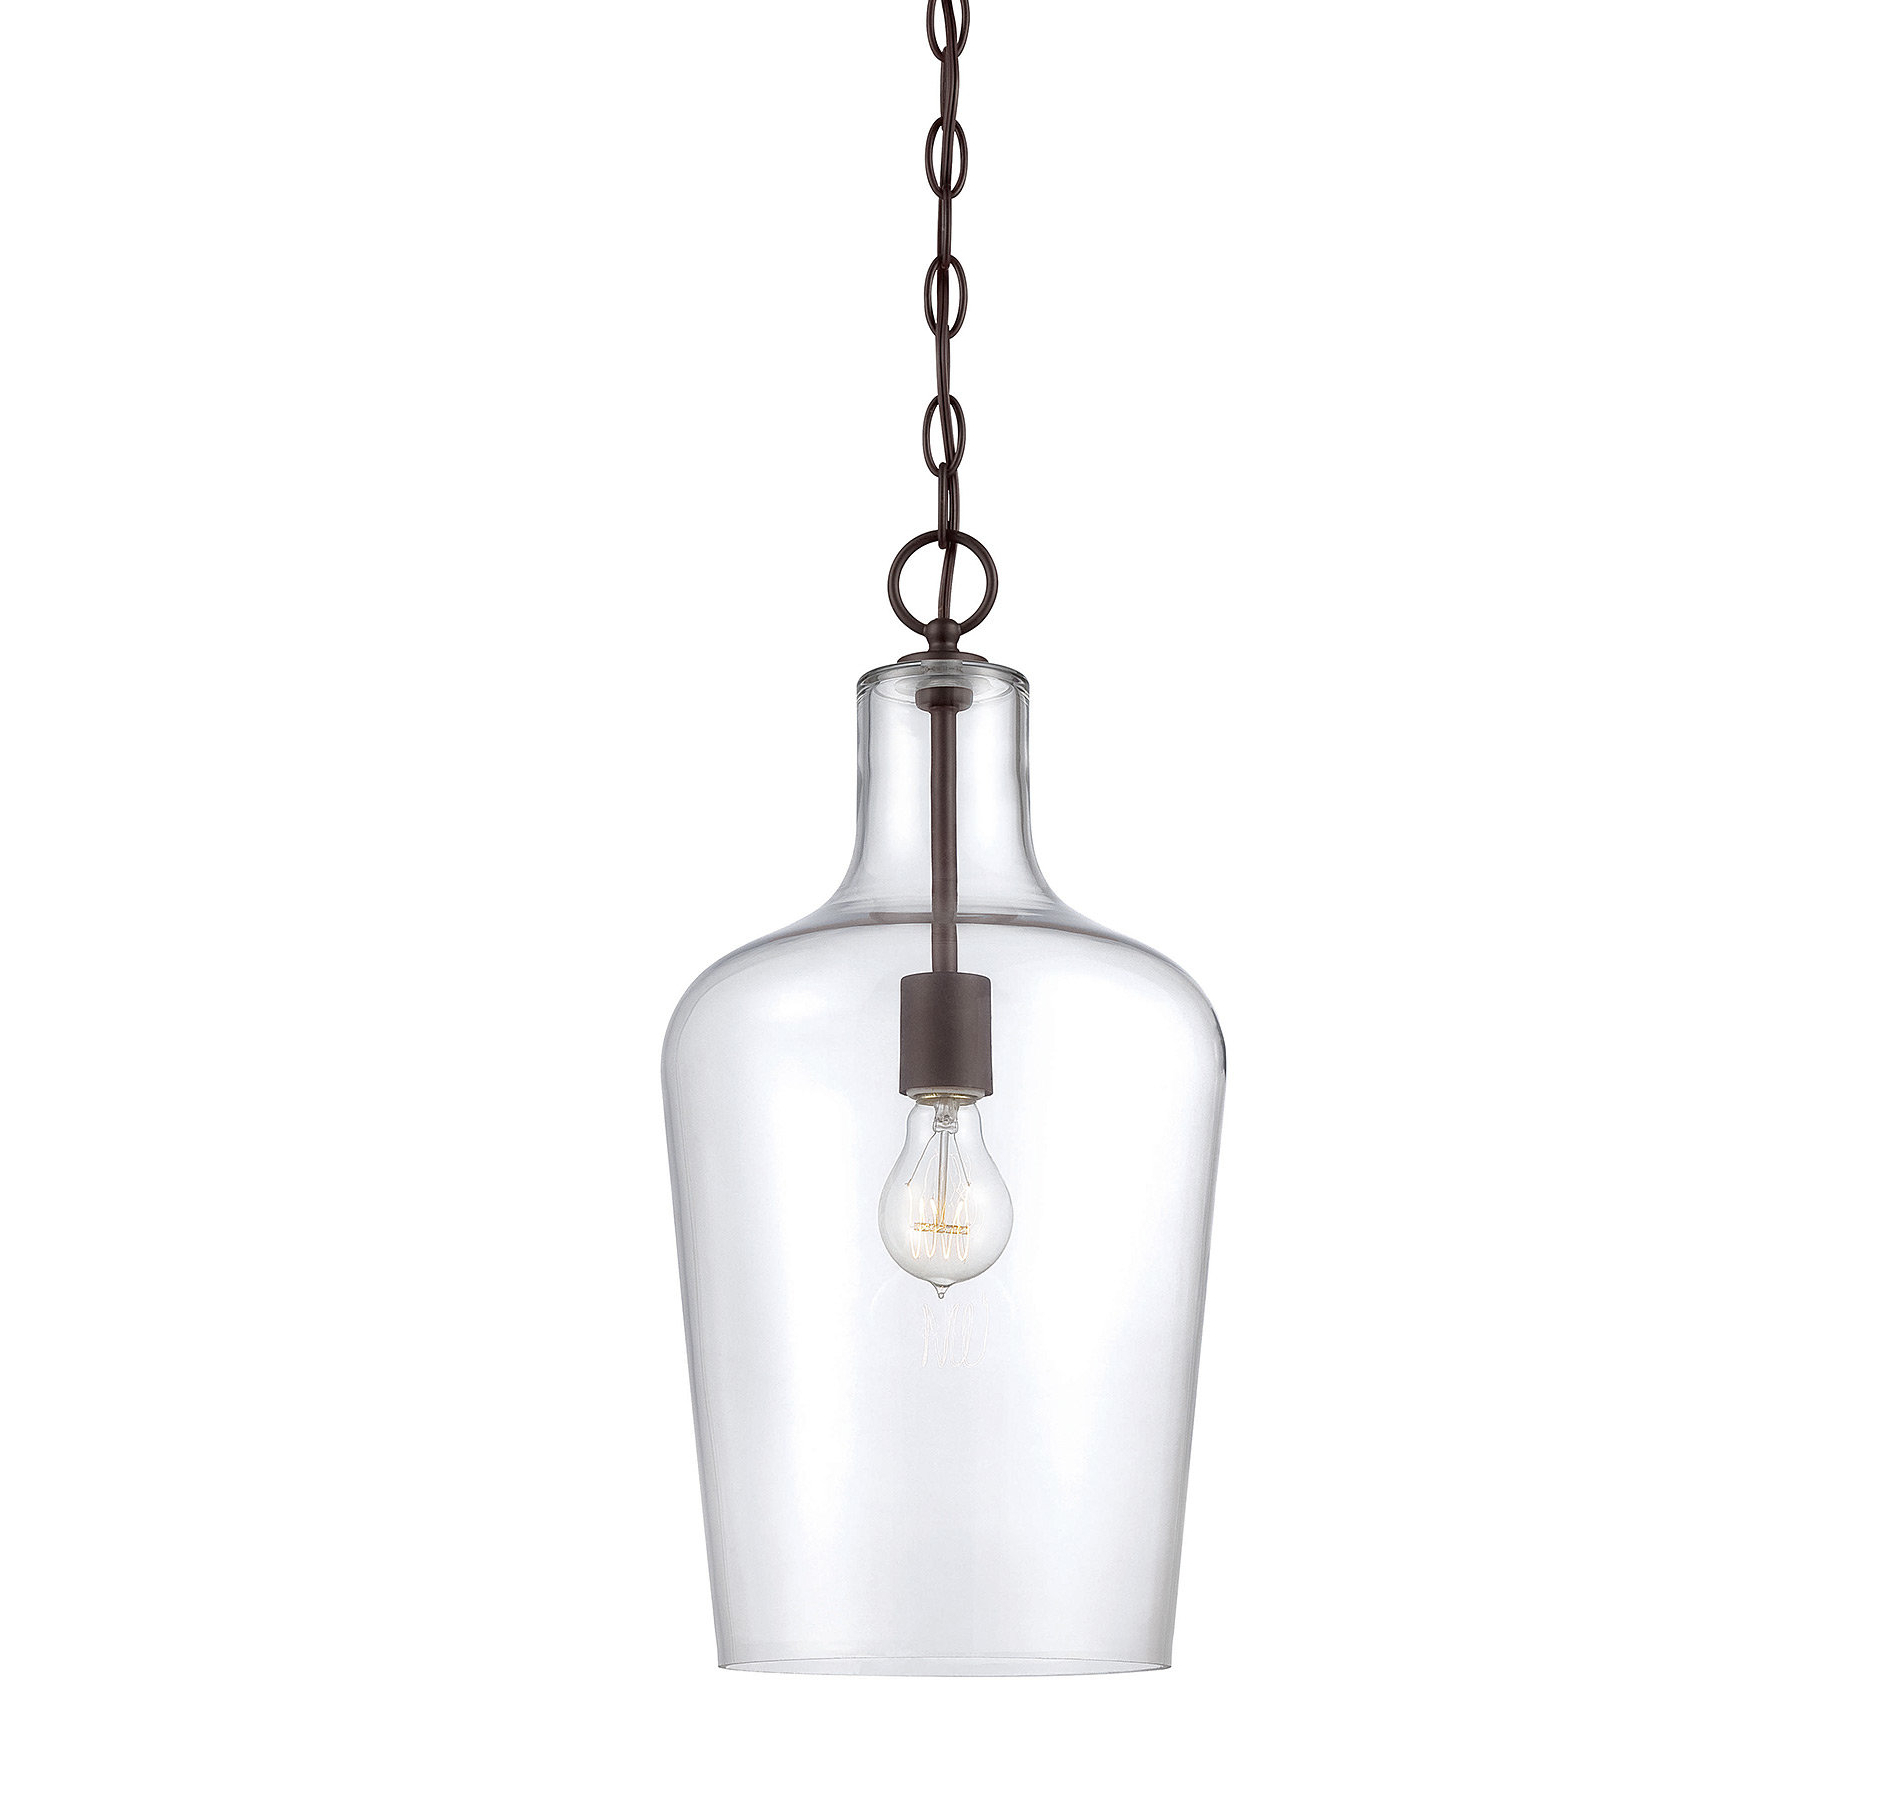 Best And Newest Carey 1 Light Single Bell Pendant Regarding Carey 1 Light Single Bell Pendants (View 3 of 20)